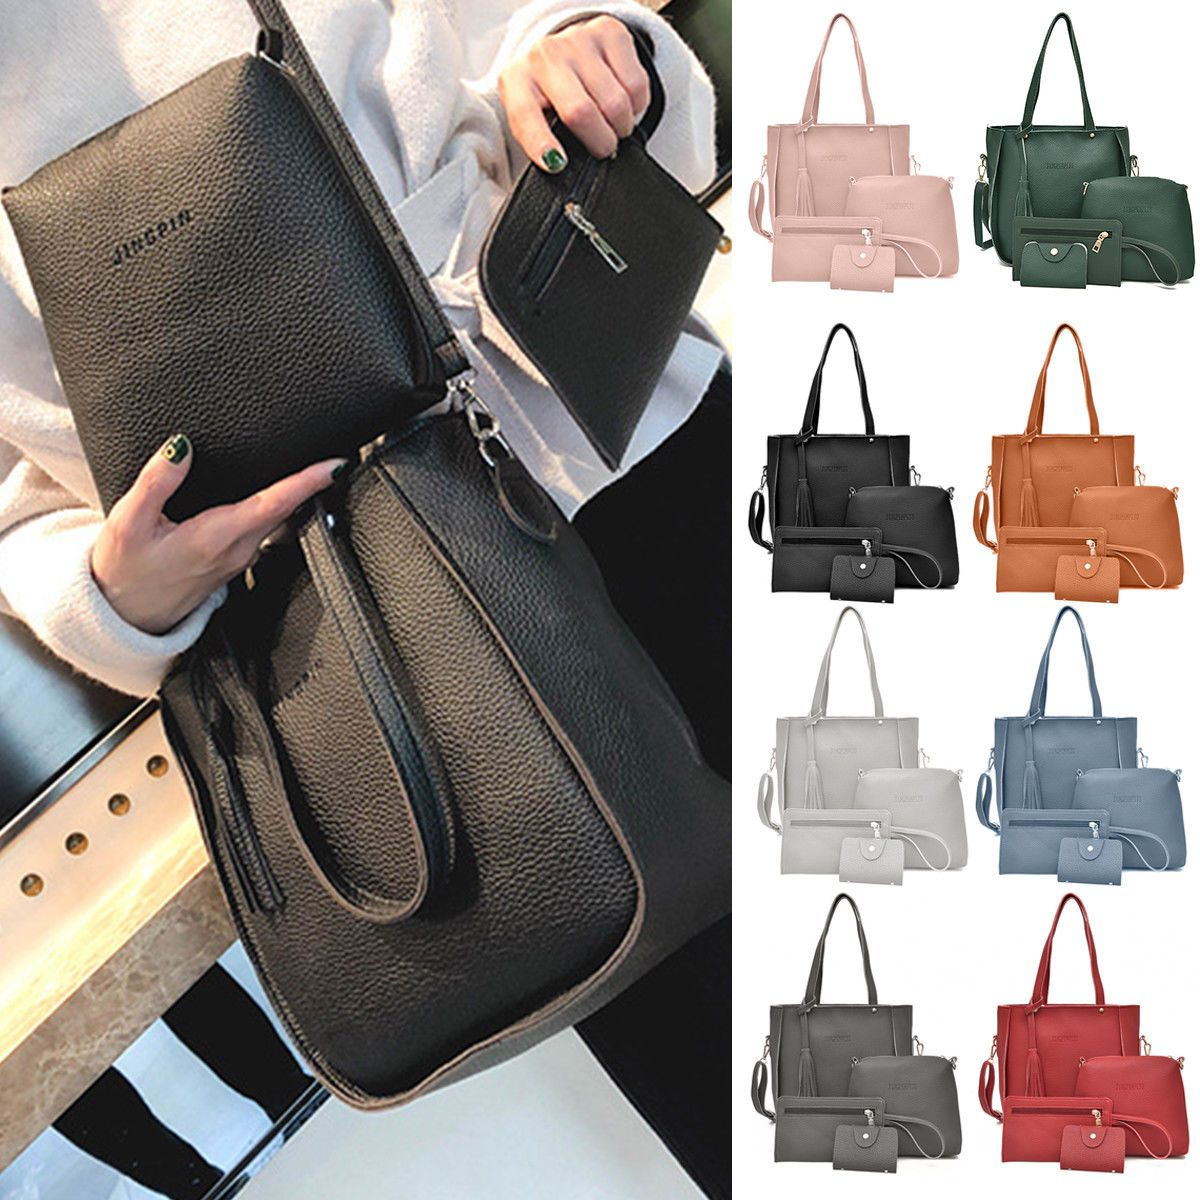 4pcs Women Lady Leather Shoulder Bag Handbag Messenger Crossbody Tote Purse Bags